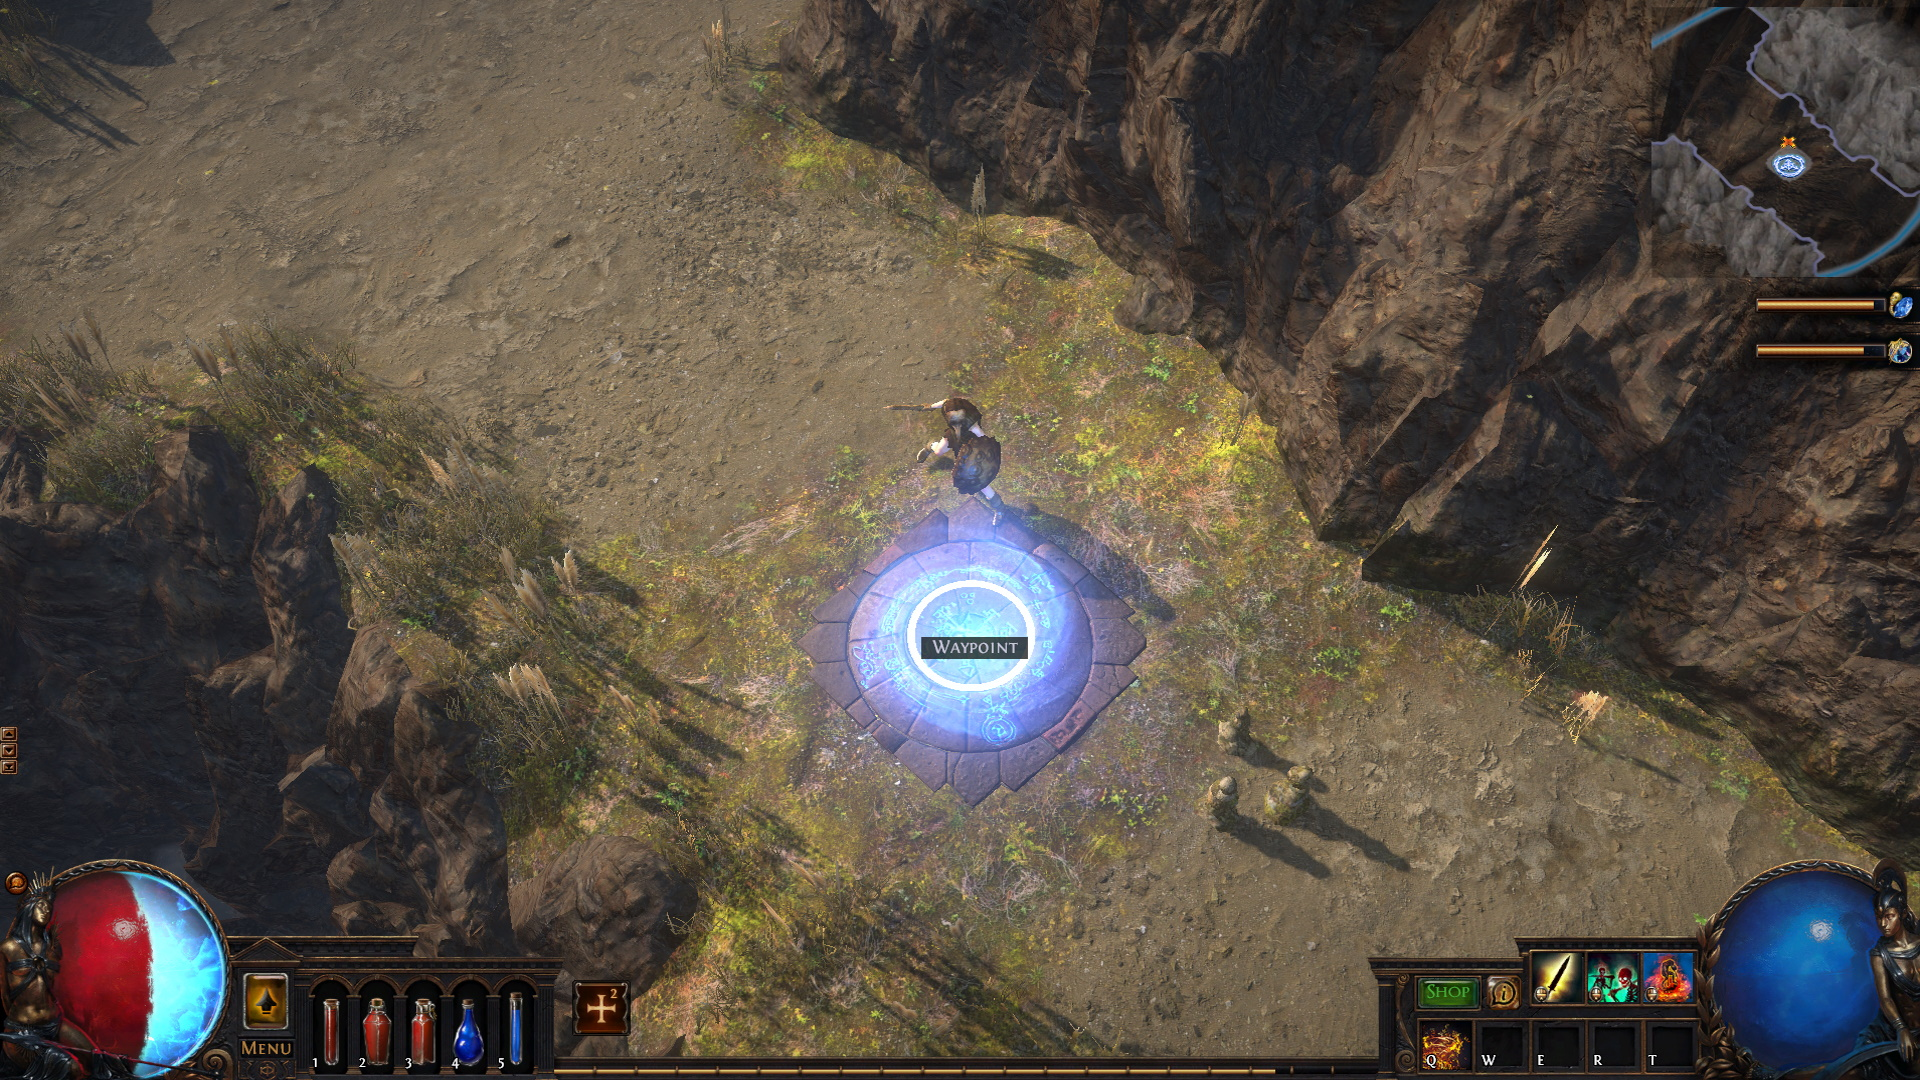 A Path Of Exile character stand on a fast travel Waypoint.